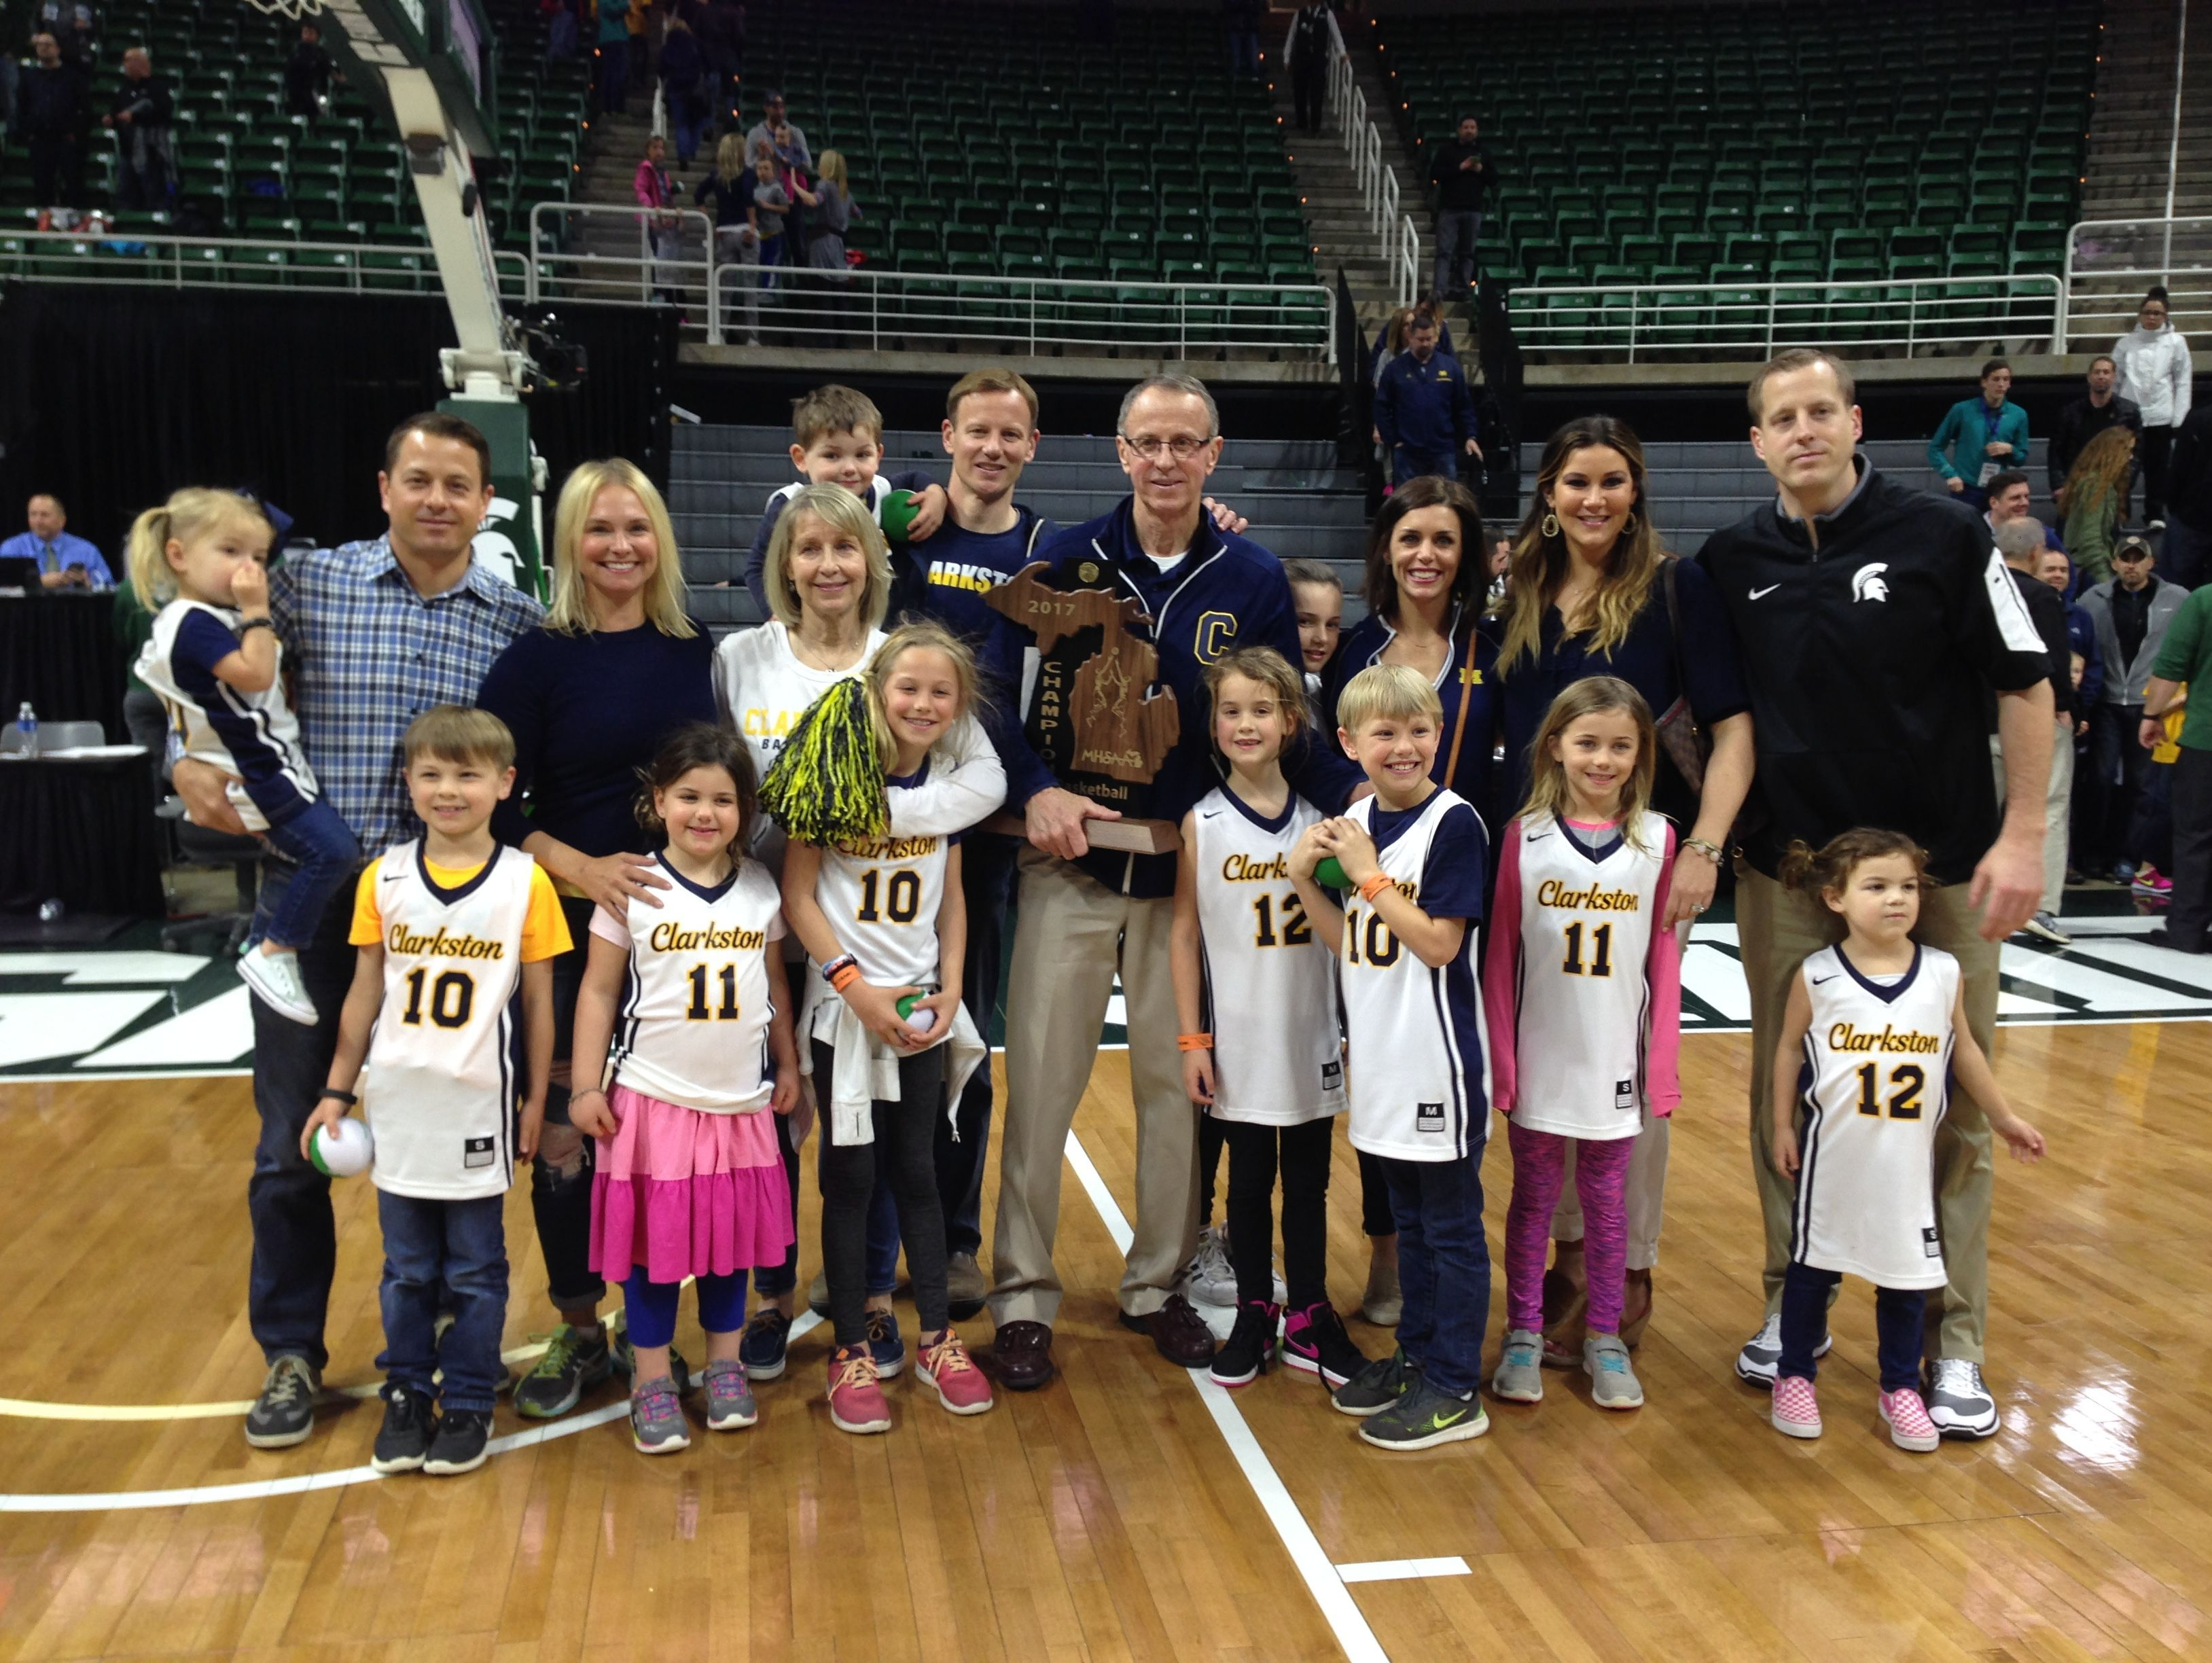 Coach Dan Fife and family had reason to celebrate Saturday after Clarkston won the Class A basketball state championship in East Lansing.